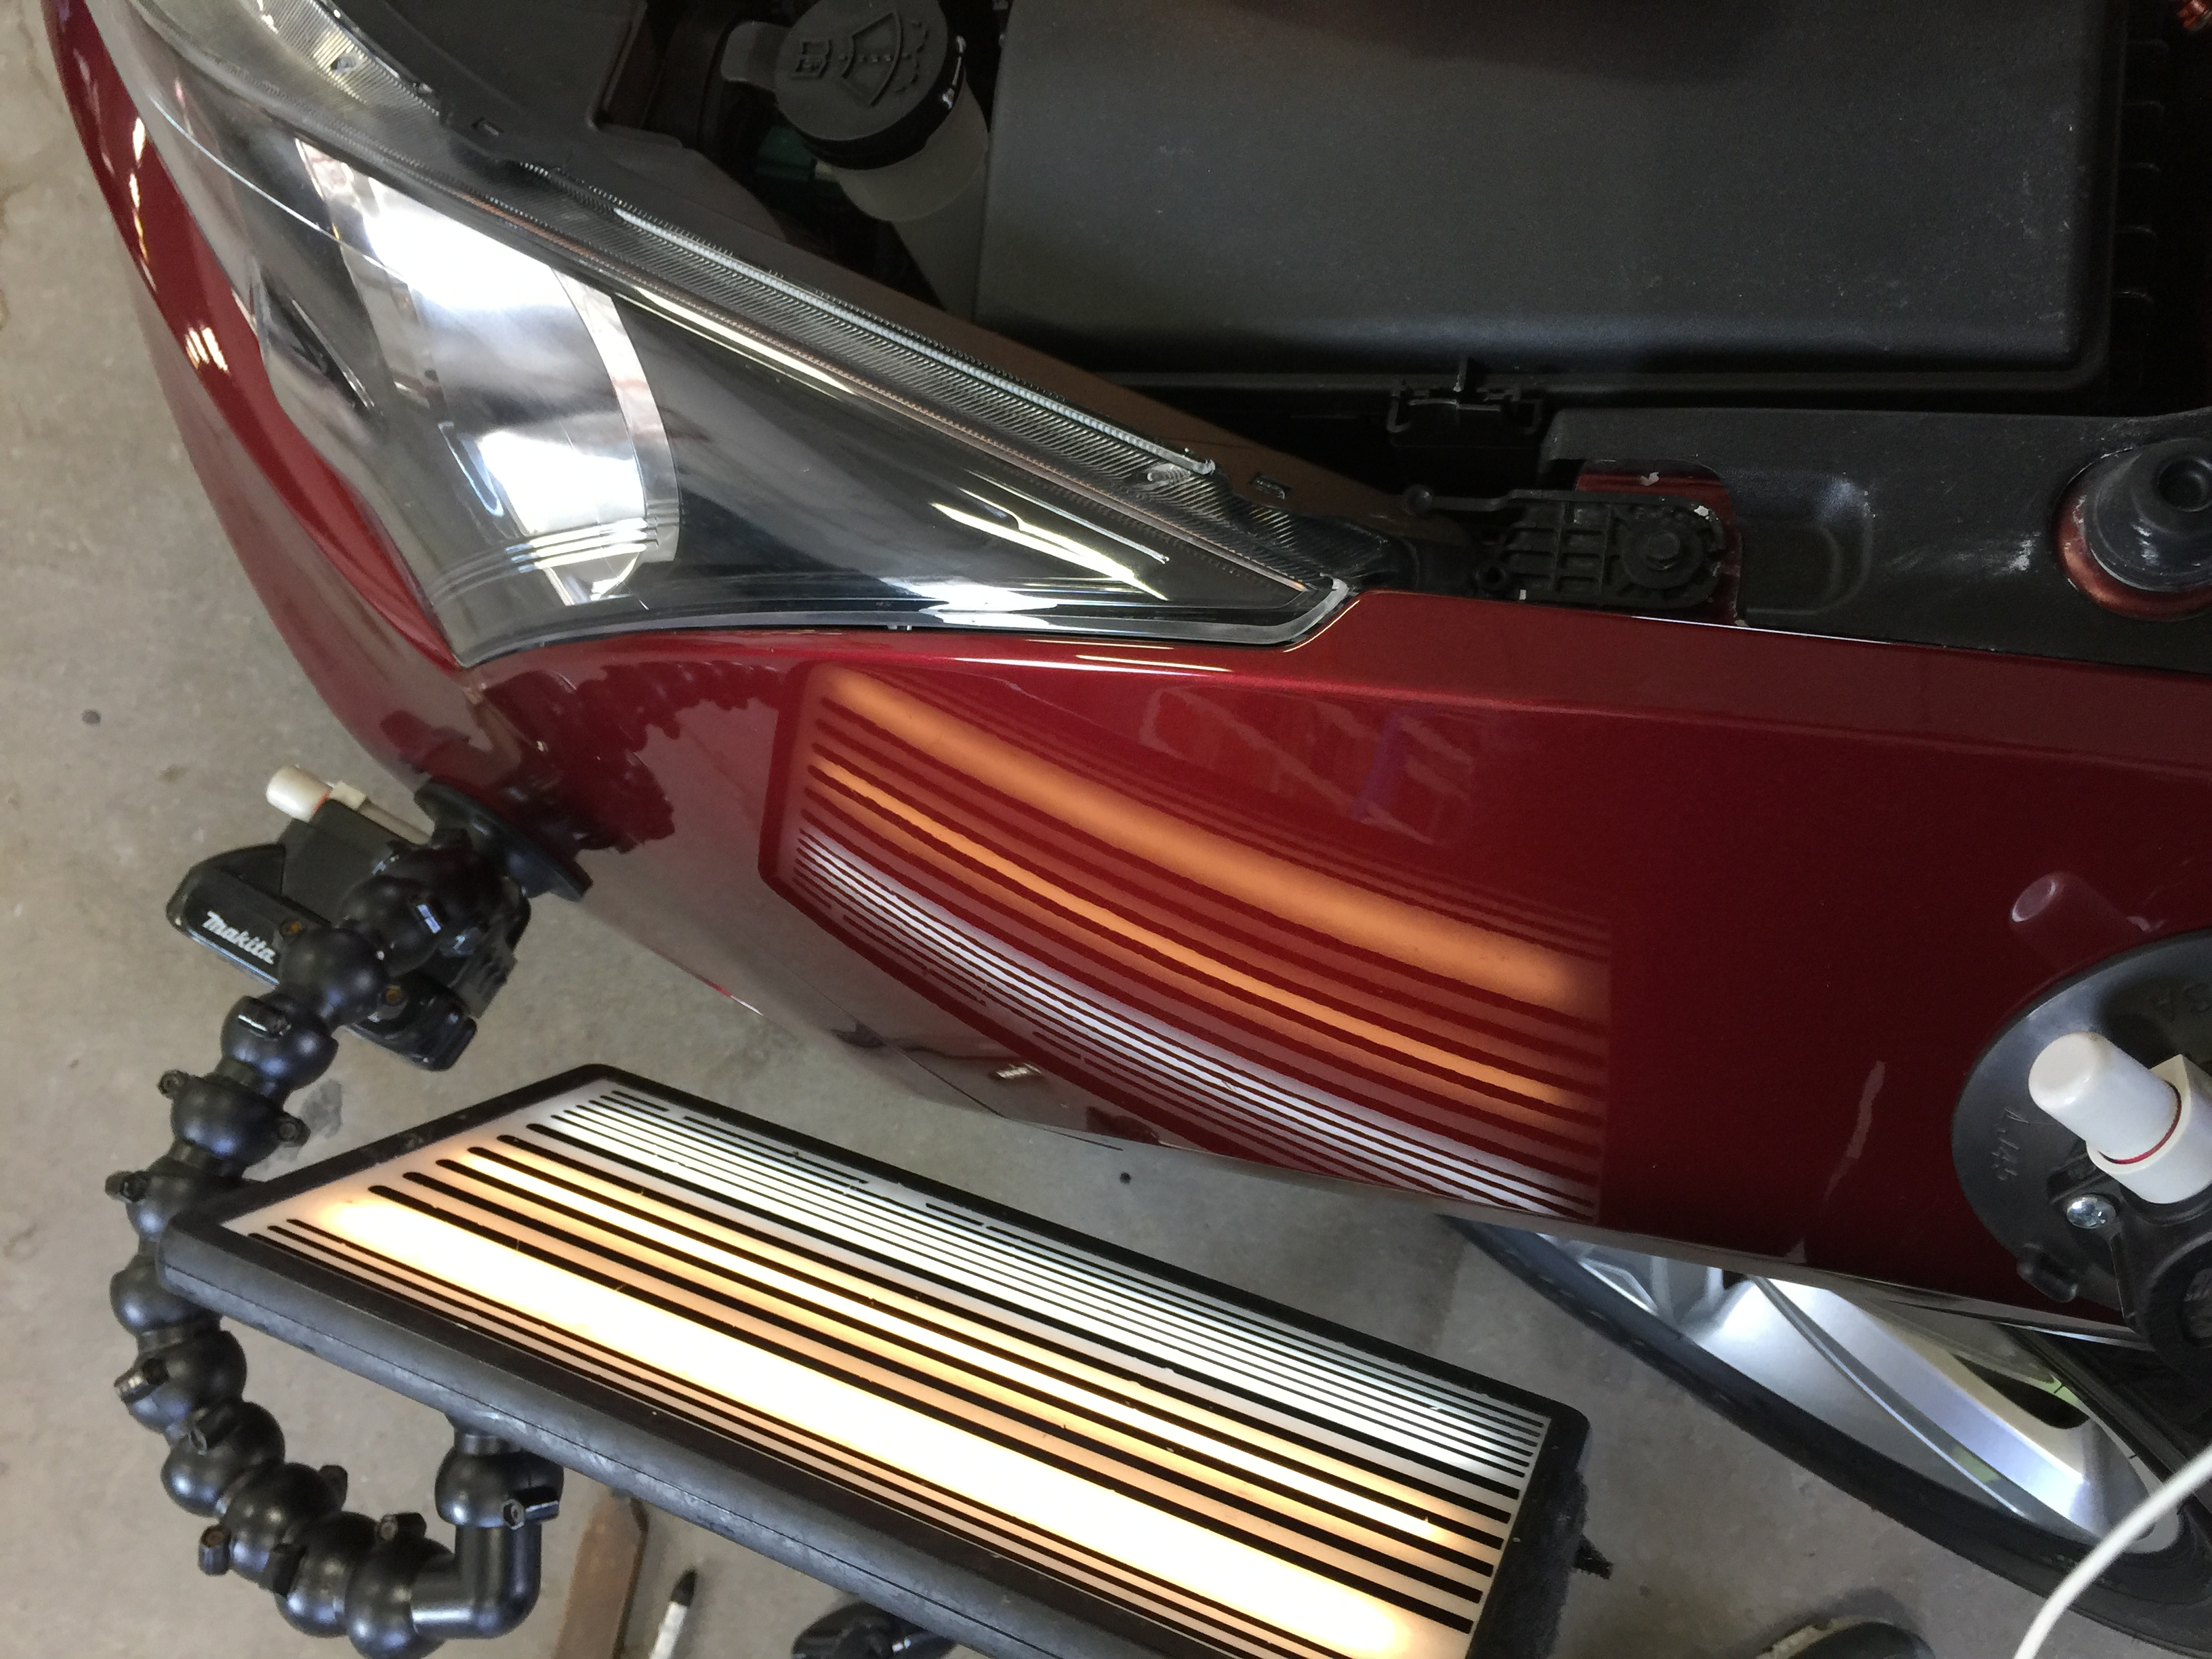 2015 Chevy Cruze Dent Removal on Drivers Fender | Dent Repair | Springfield, IL. Http://217dent.com